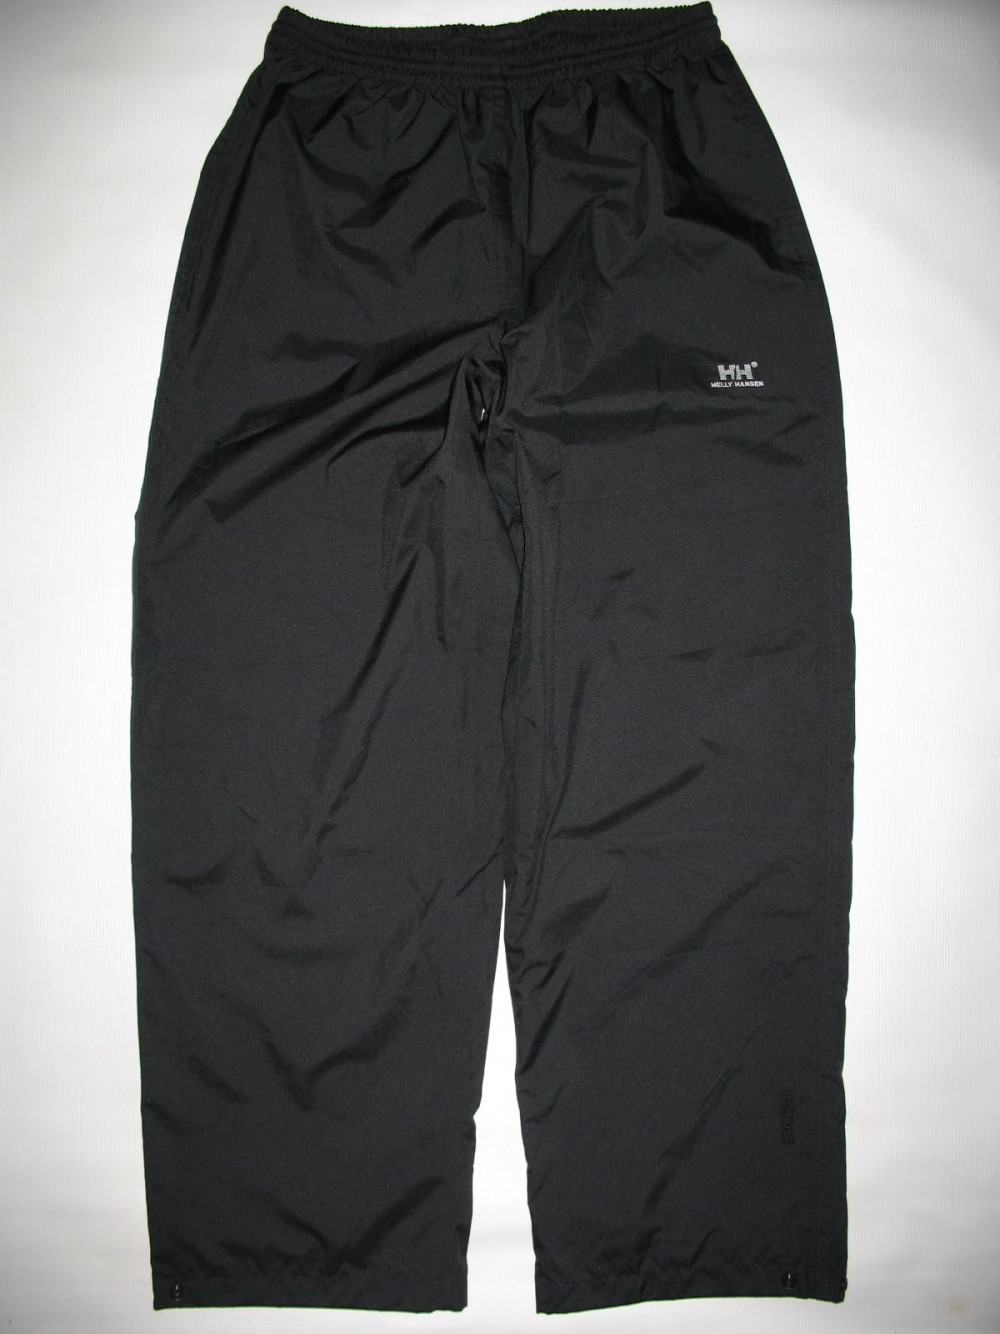 Штаны HELLY HANSEN hellytech pants (размер М) - 1